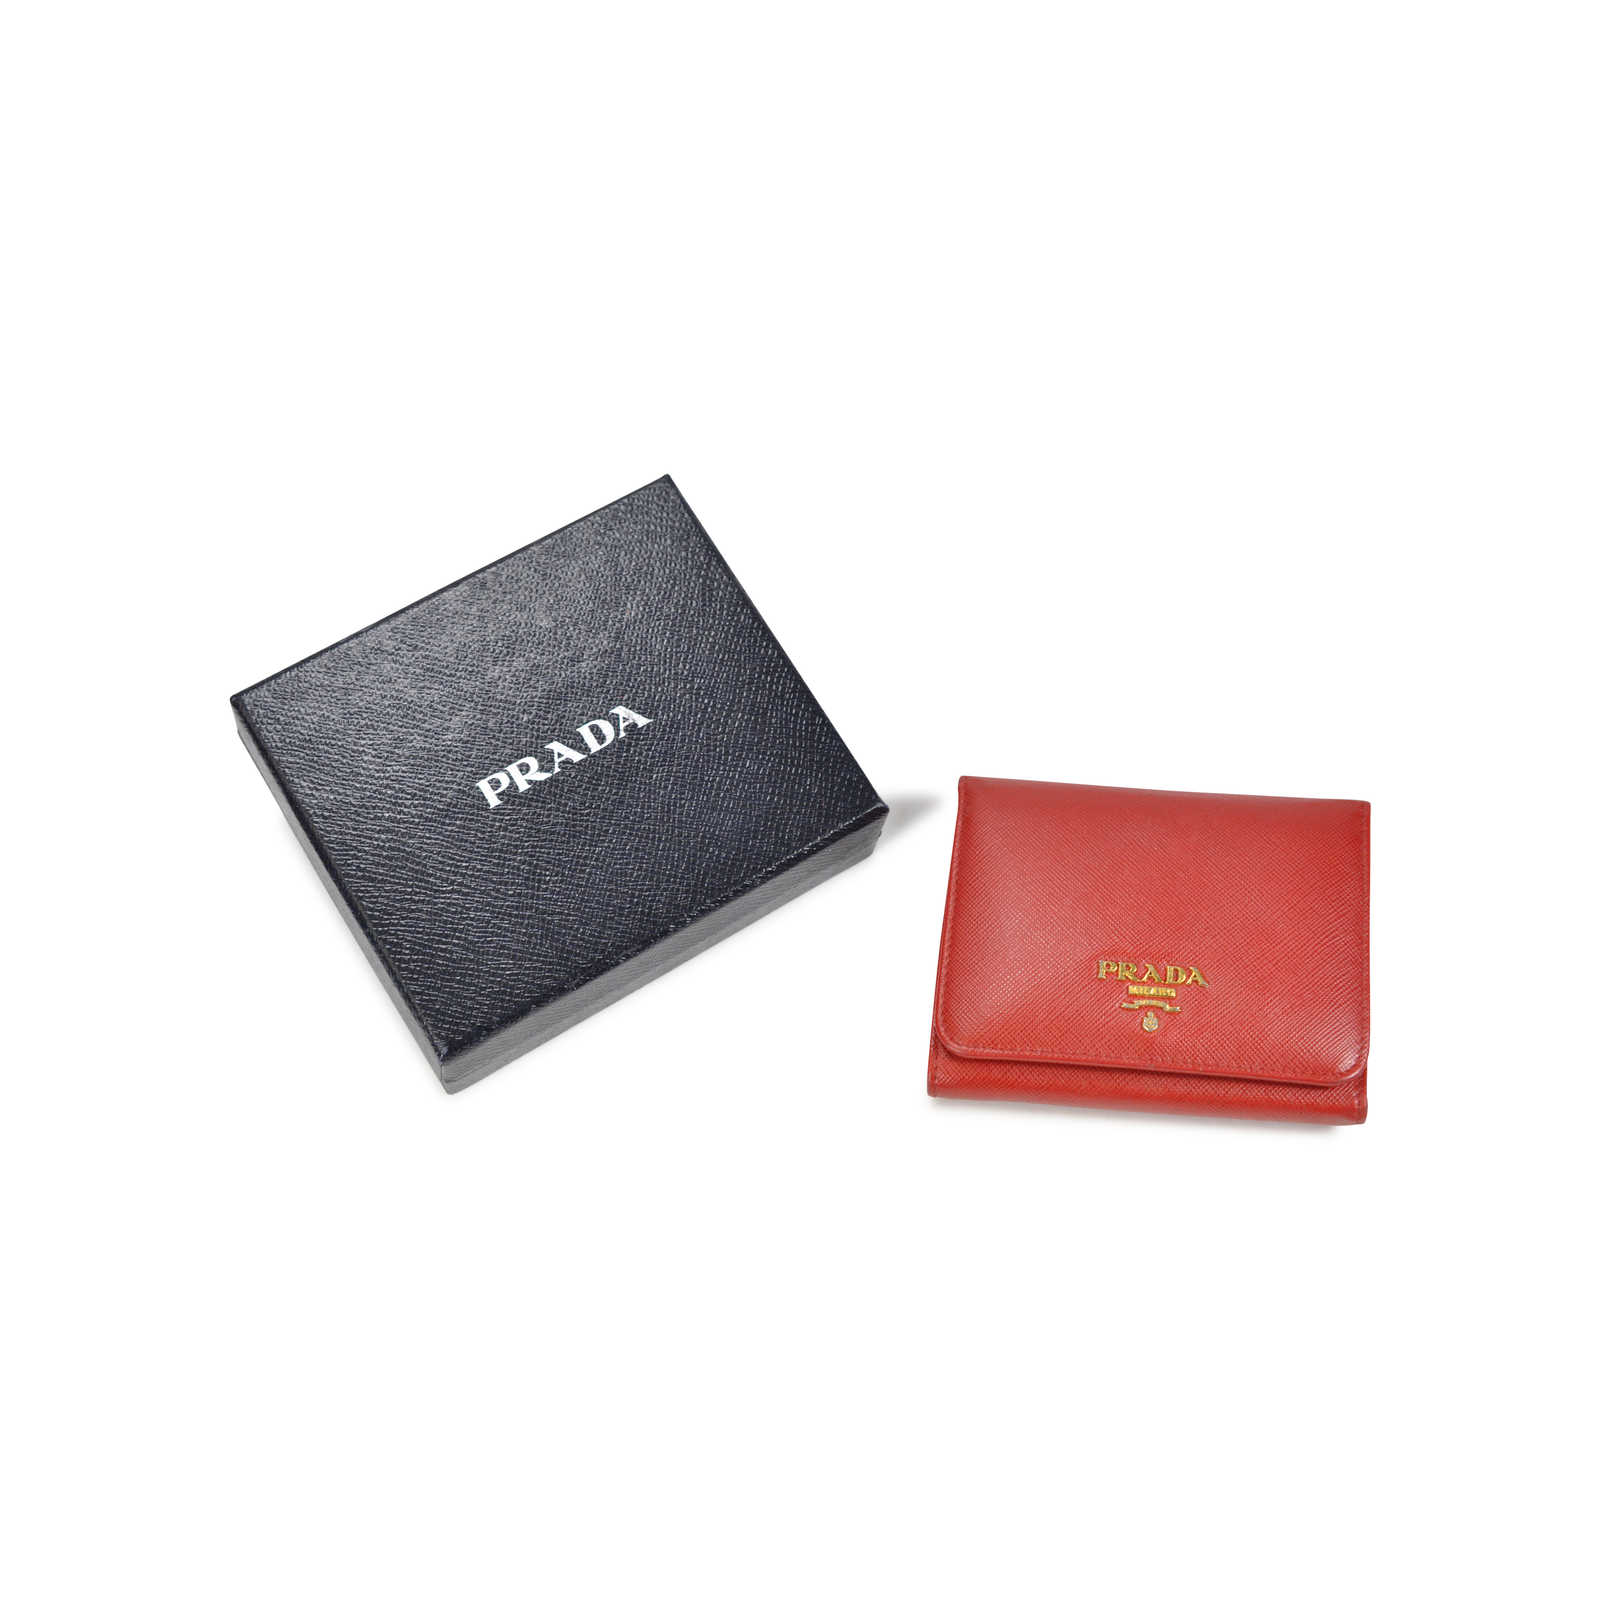 5f564ea5 Authentic Second Hand Prada Saffiano Wallet (PSS-059-00004) - THE ...